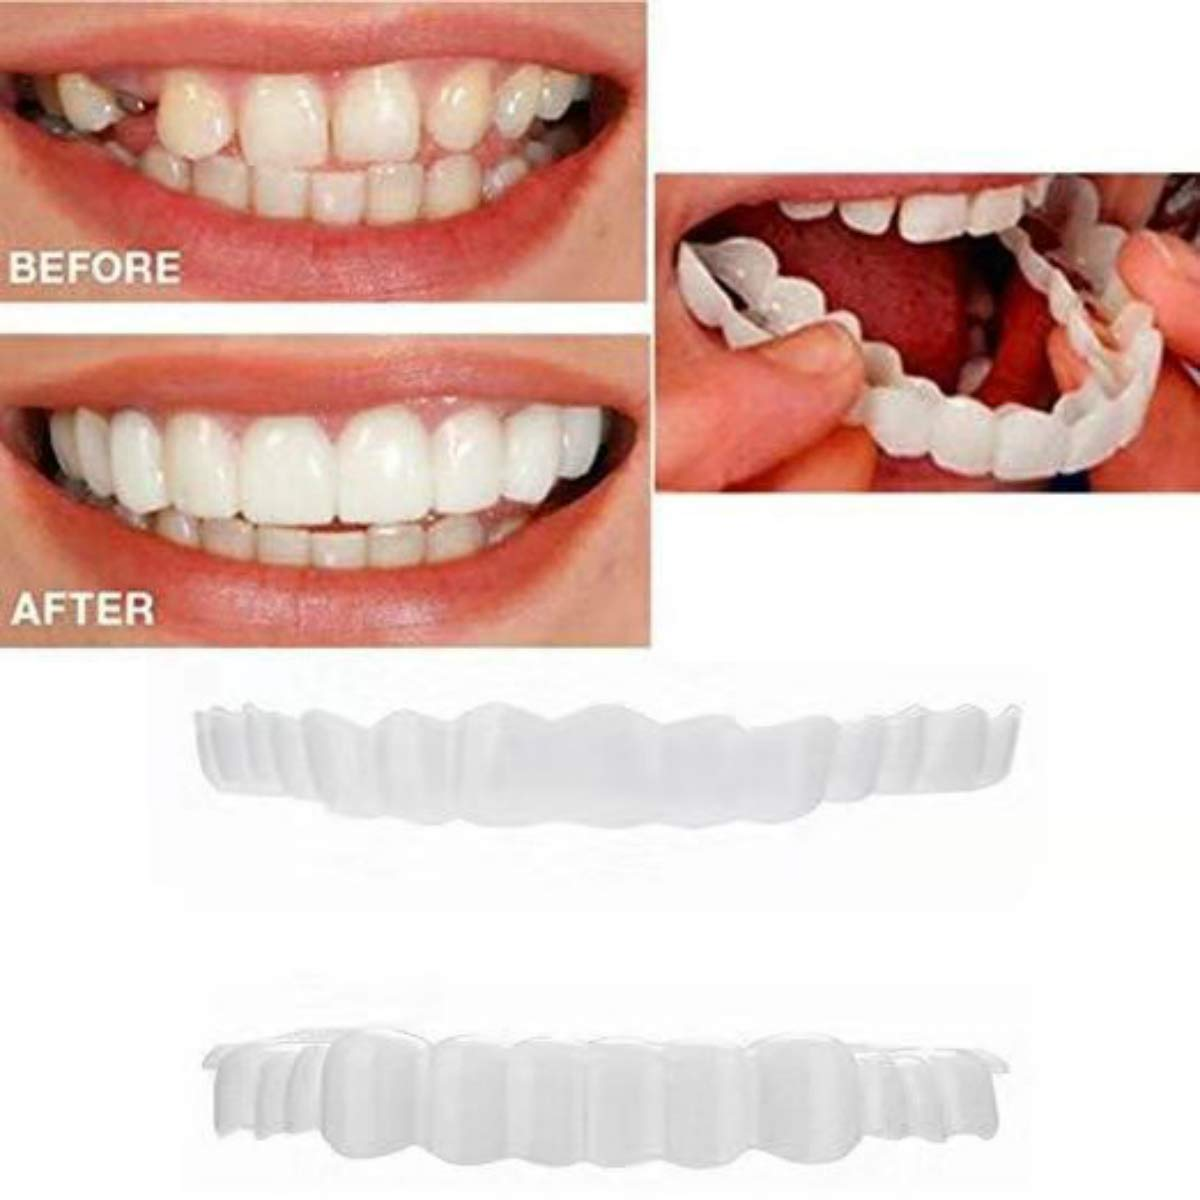 Top and Bottom Cosmetic Veneers Instant Smile